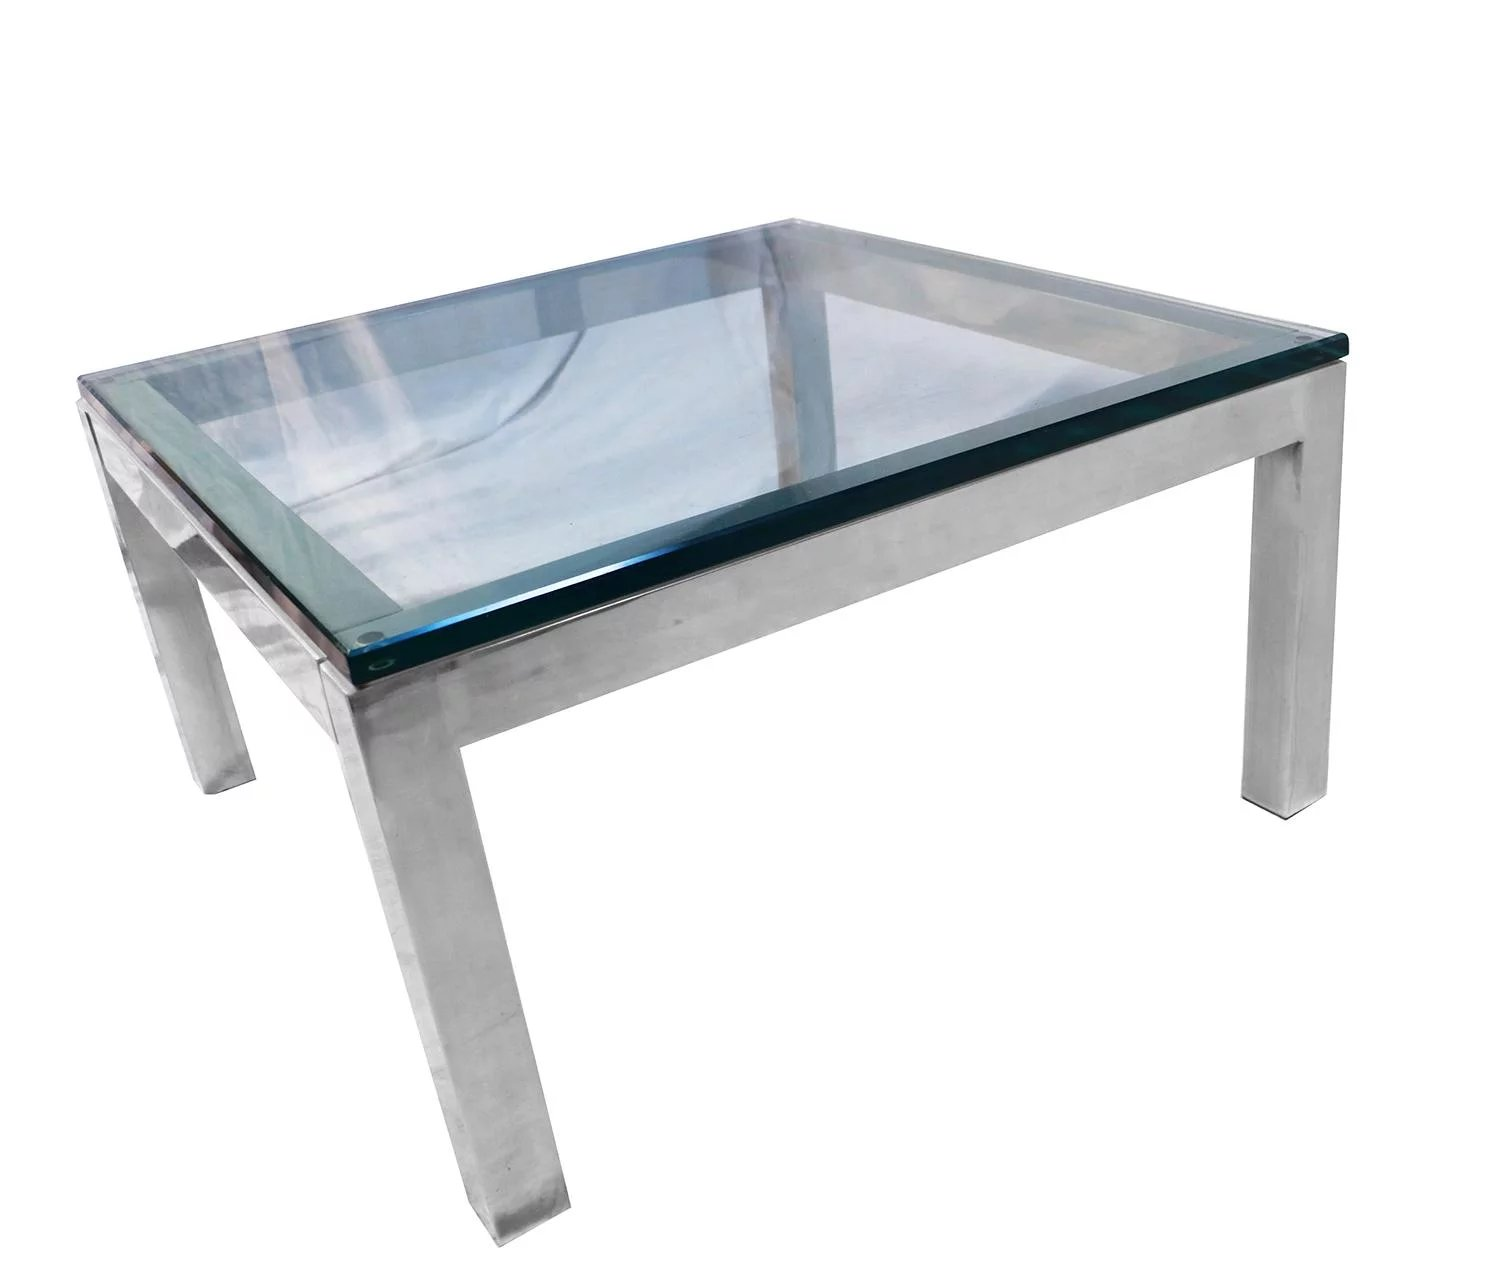 7da042eeec478 Mid Century Modern Chrome   Glass Coffee Table Milo Baughman Style. Click  to expand